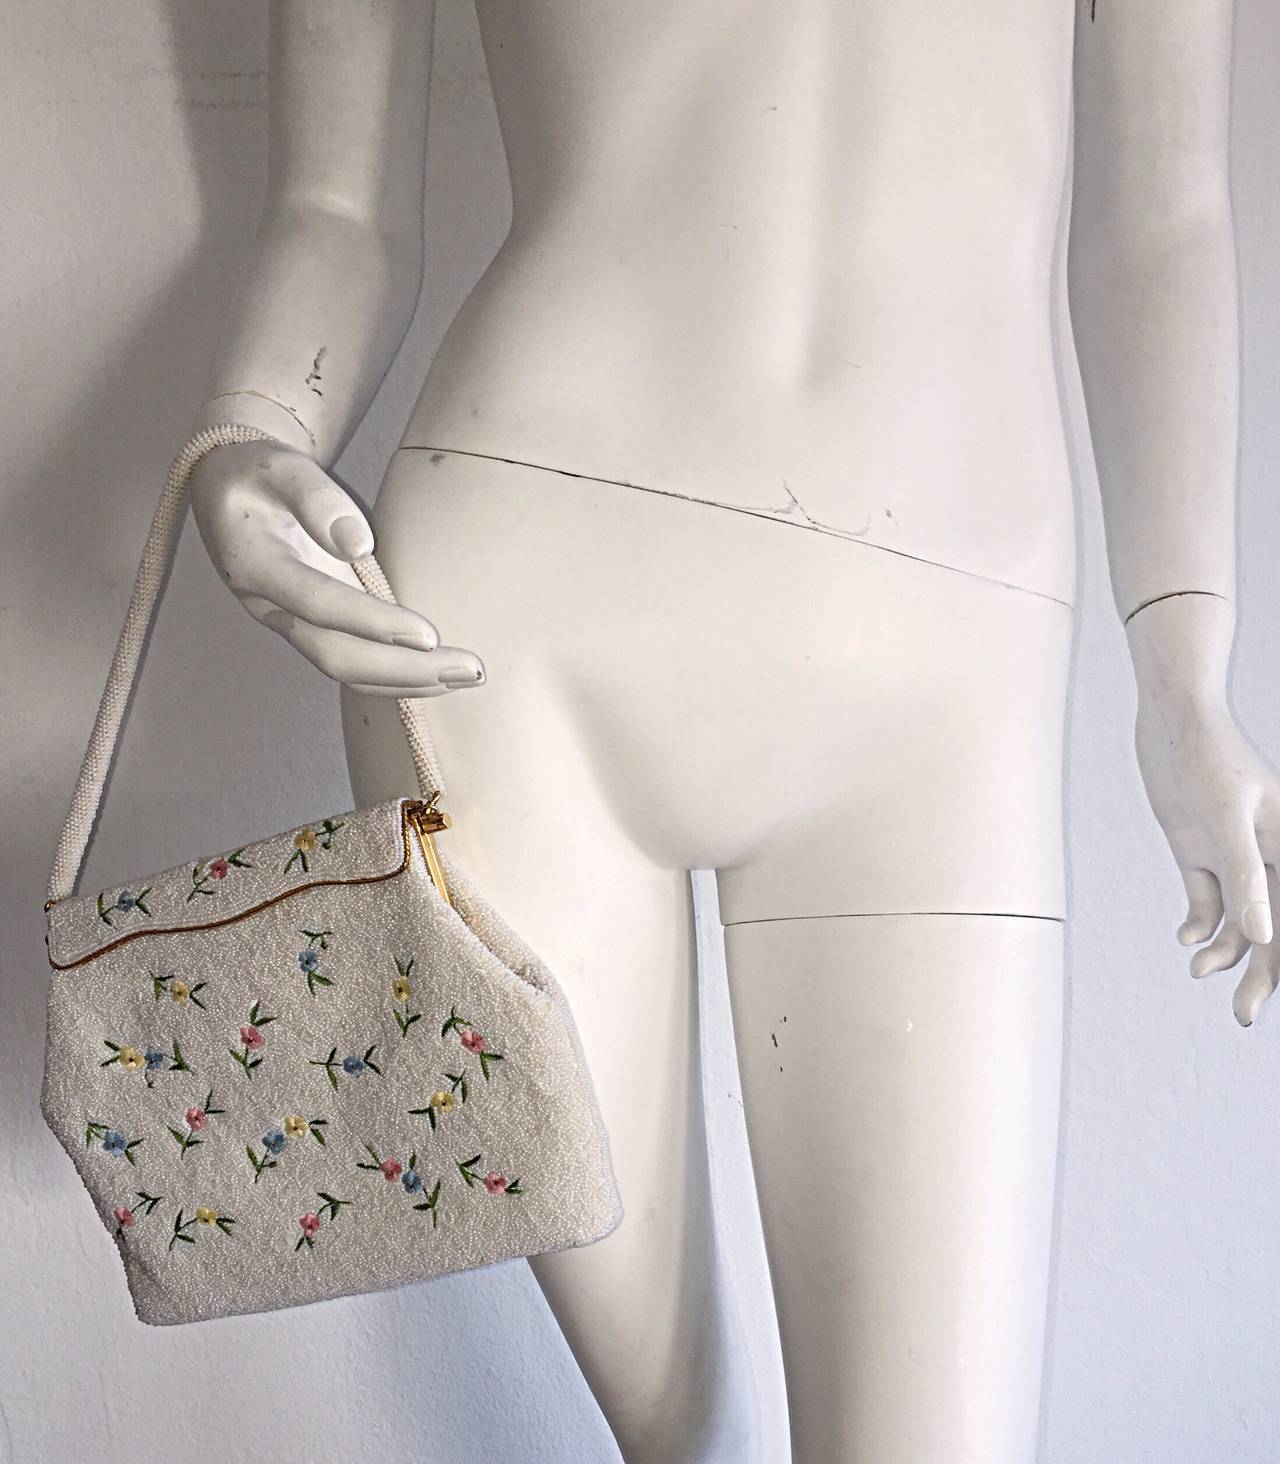 Featuring a gorgeous 1960s fully beaded purse! Pastel colored beaded flowers throughout, with a gold trimmed flap closure. Fully lined, with multiple pockets to fit modern day accessories (ie-iPhone, Android, cosmetics, etc.) The perfect size! Can